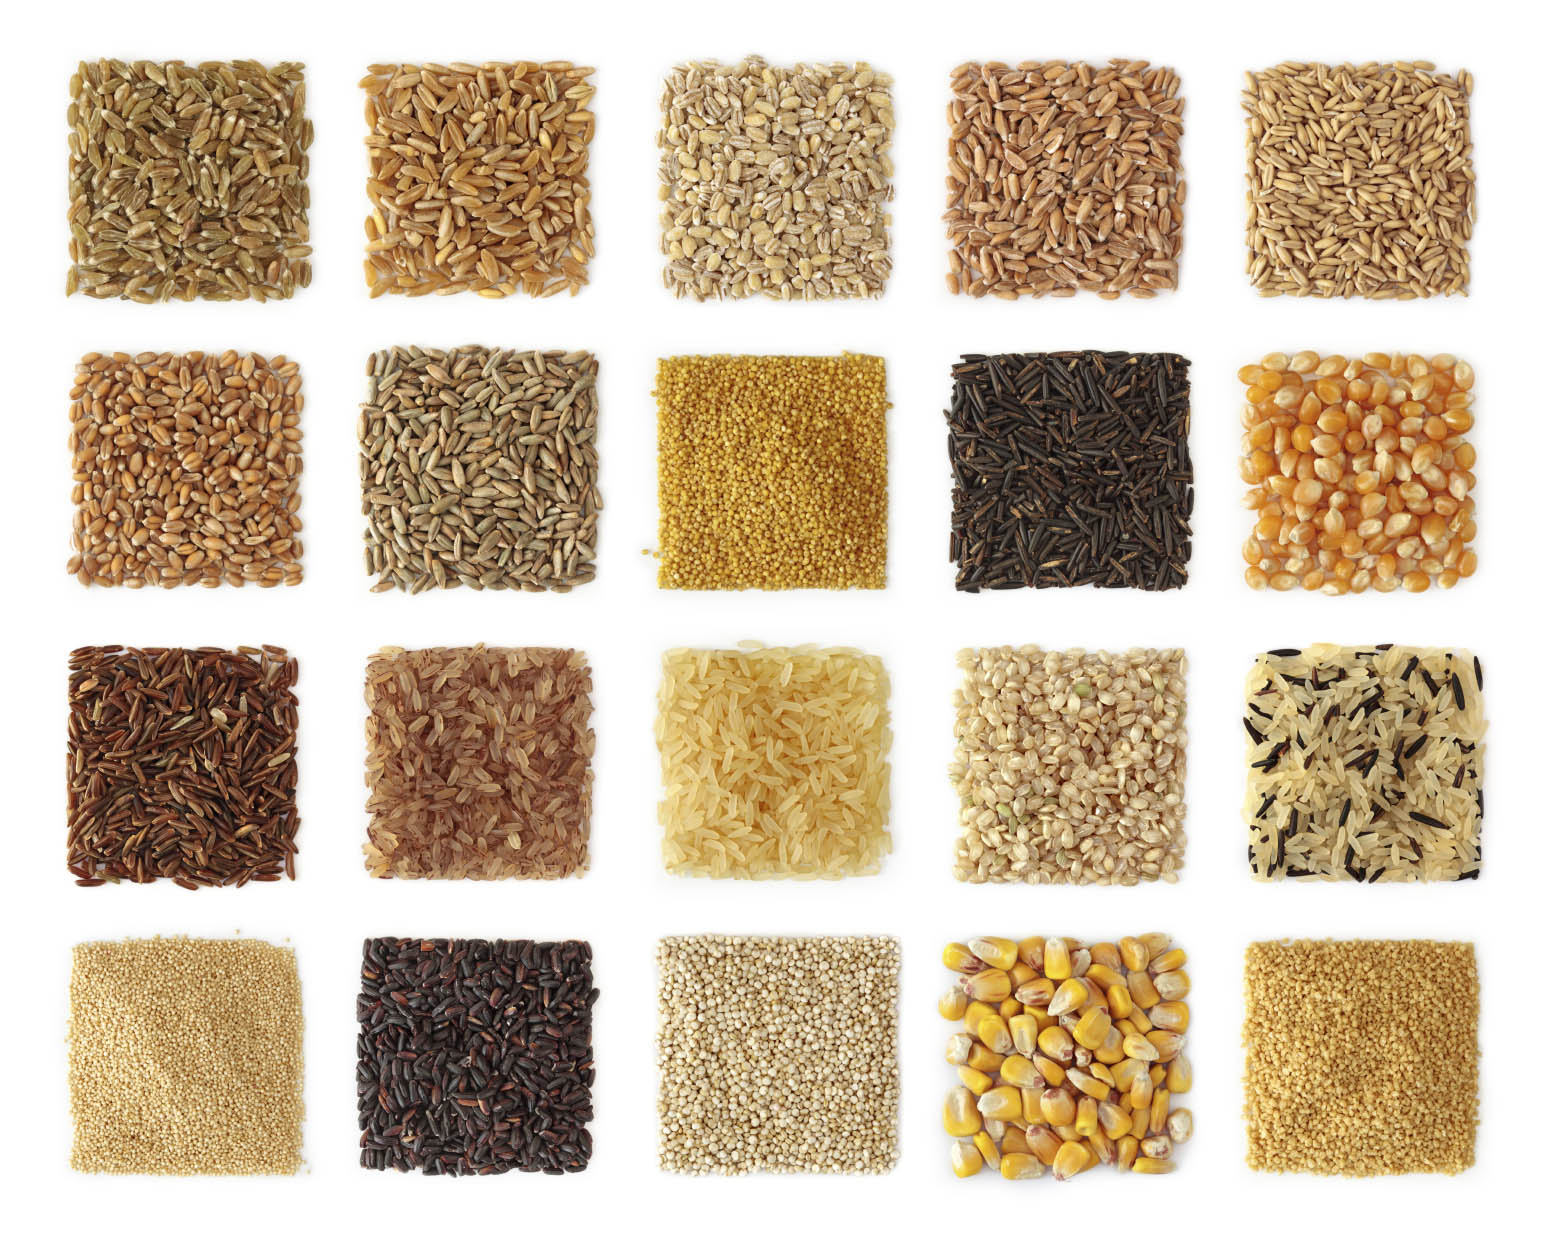 Settling the great grain debate  Can wheat and other grains